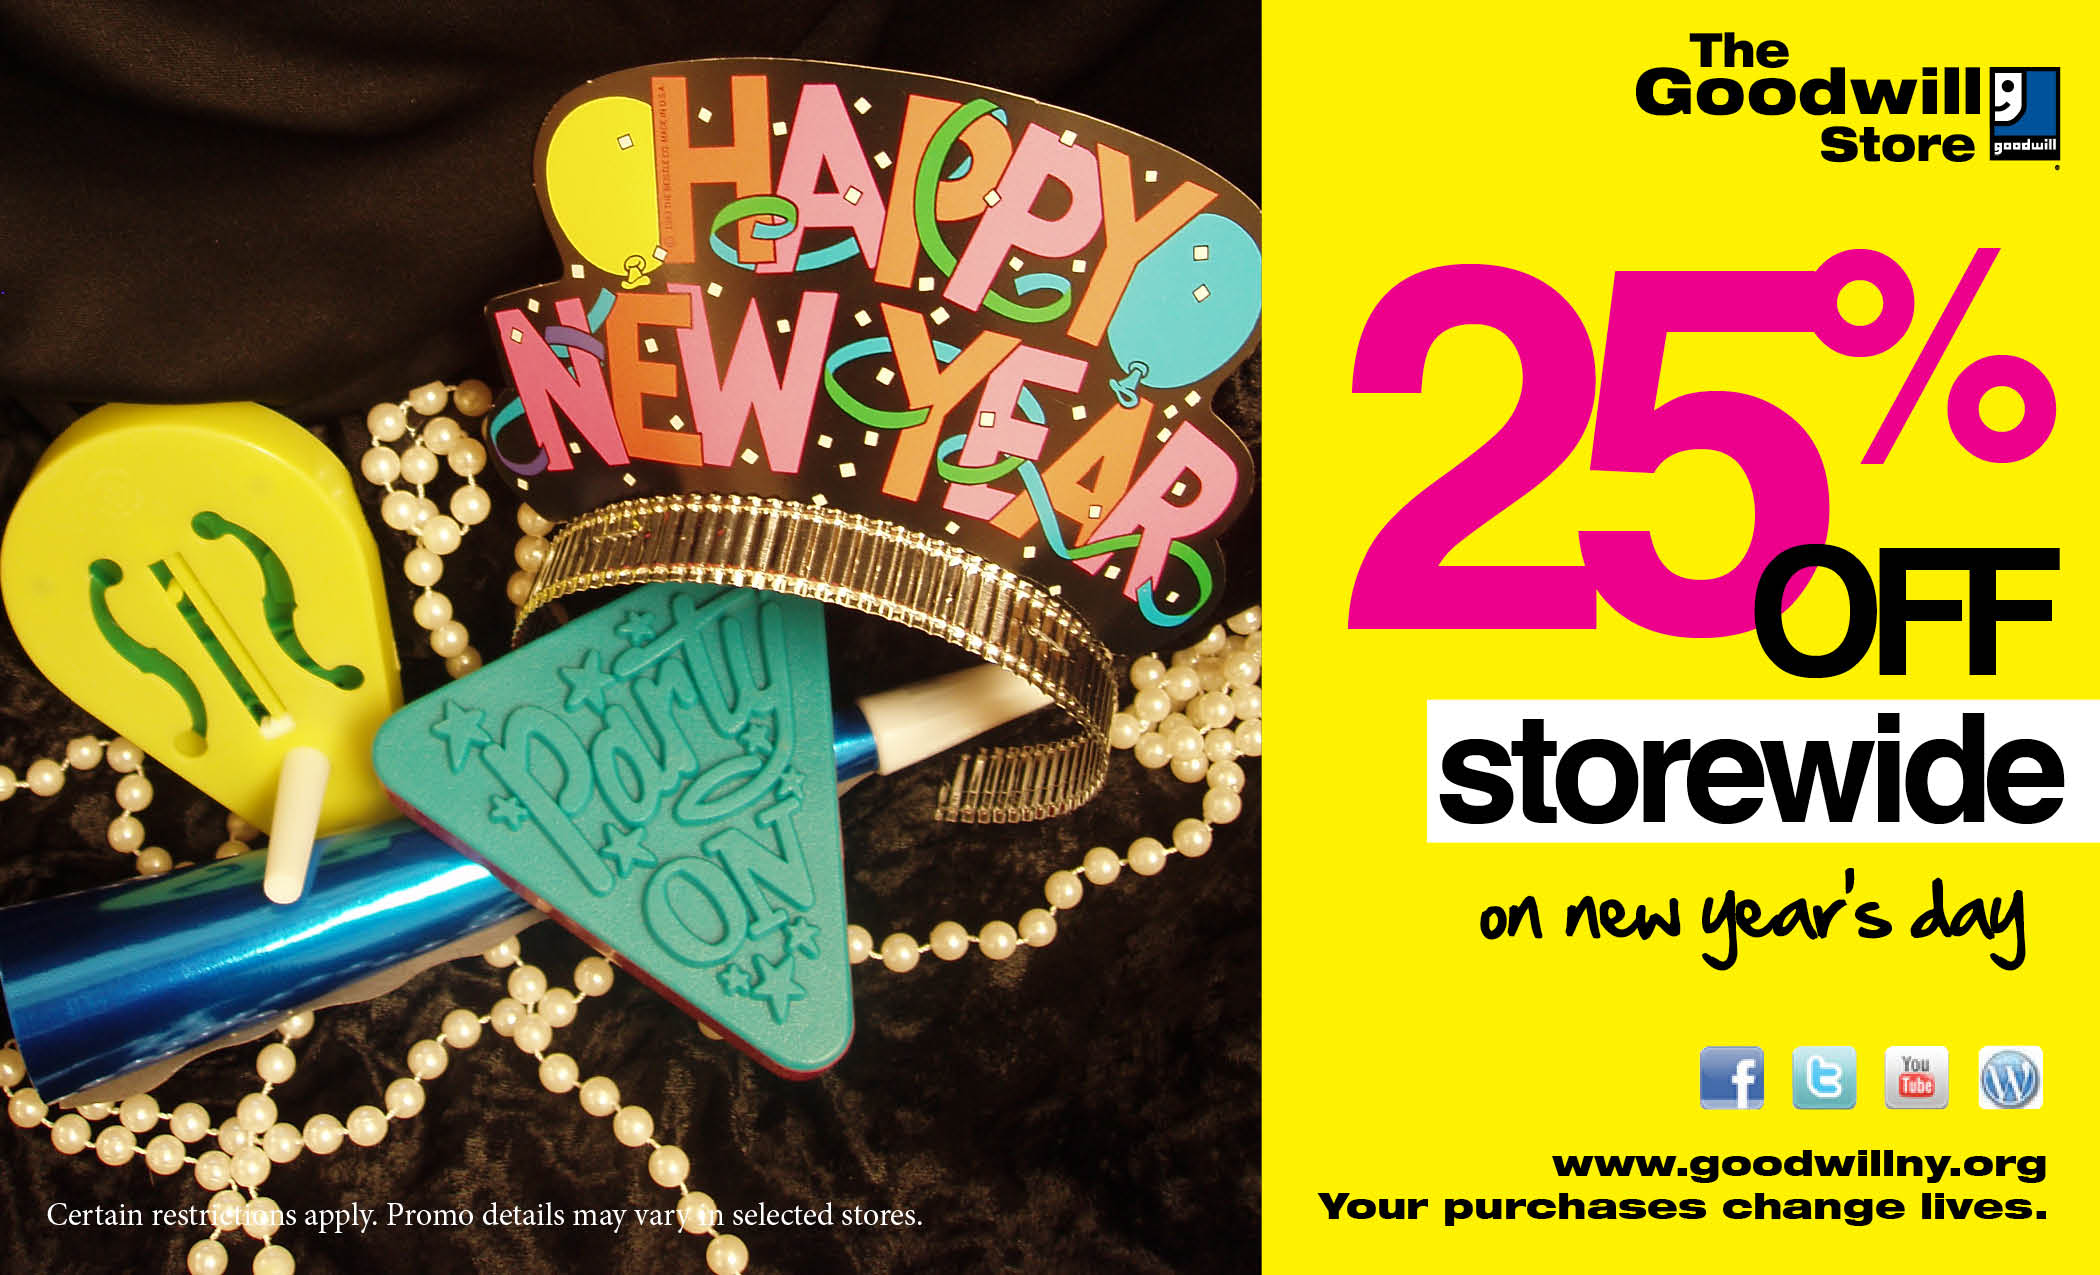 Celebrate New Year's Day with 25% off at Goodwill! The storewide